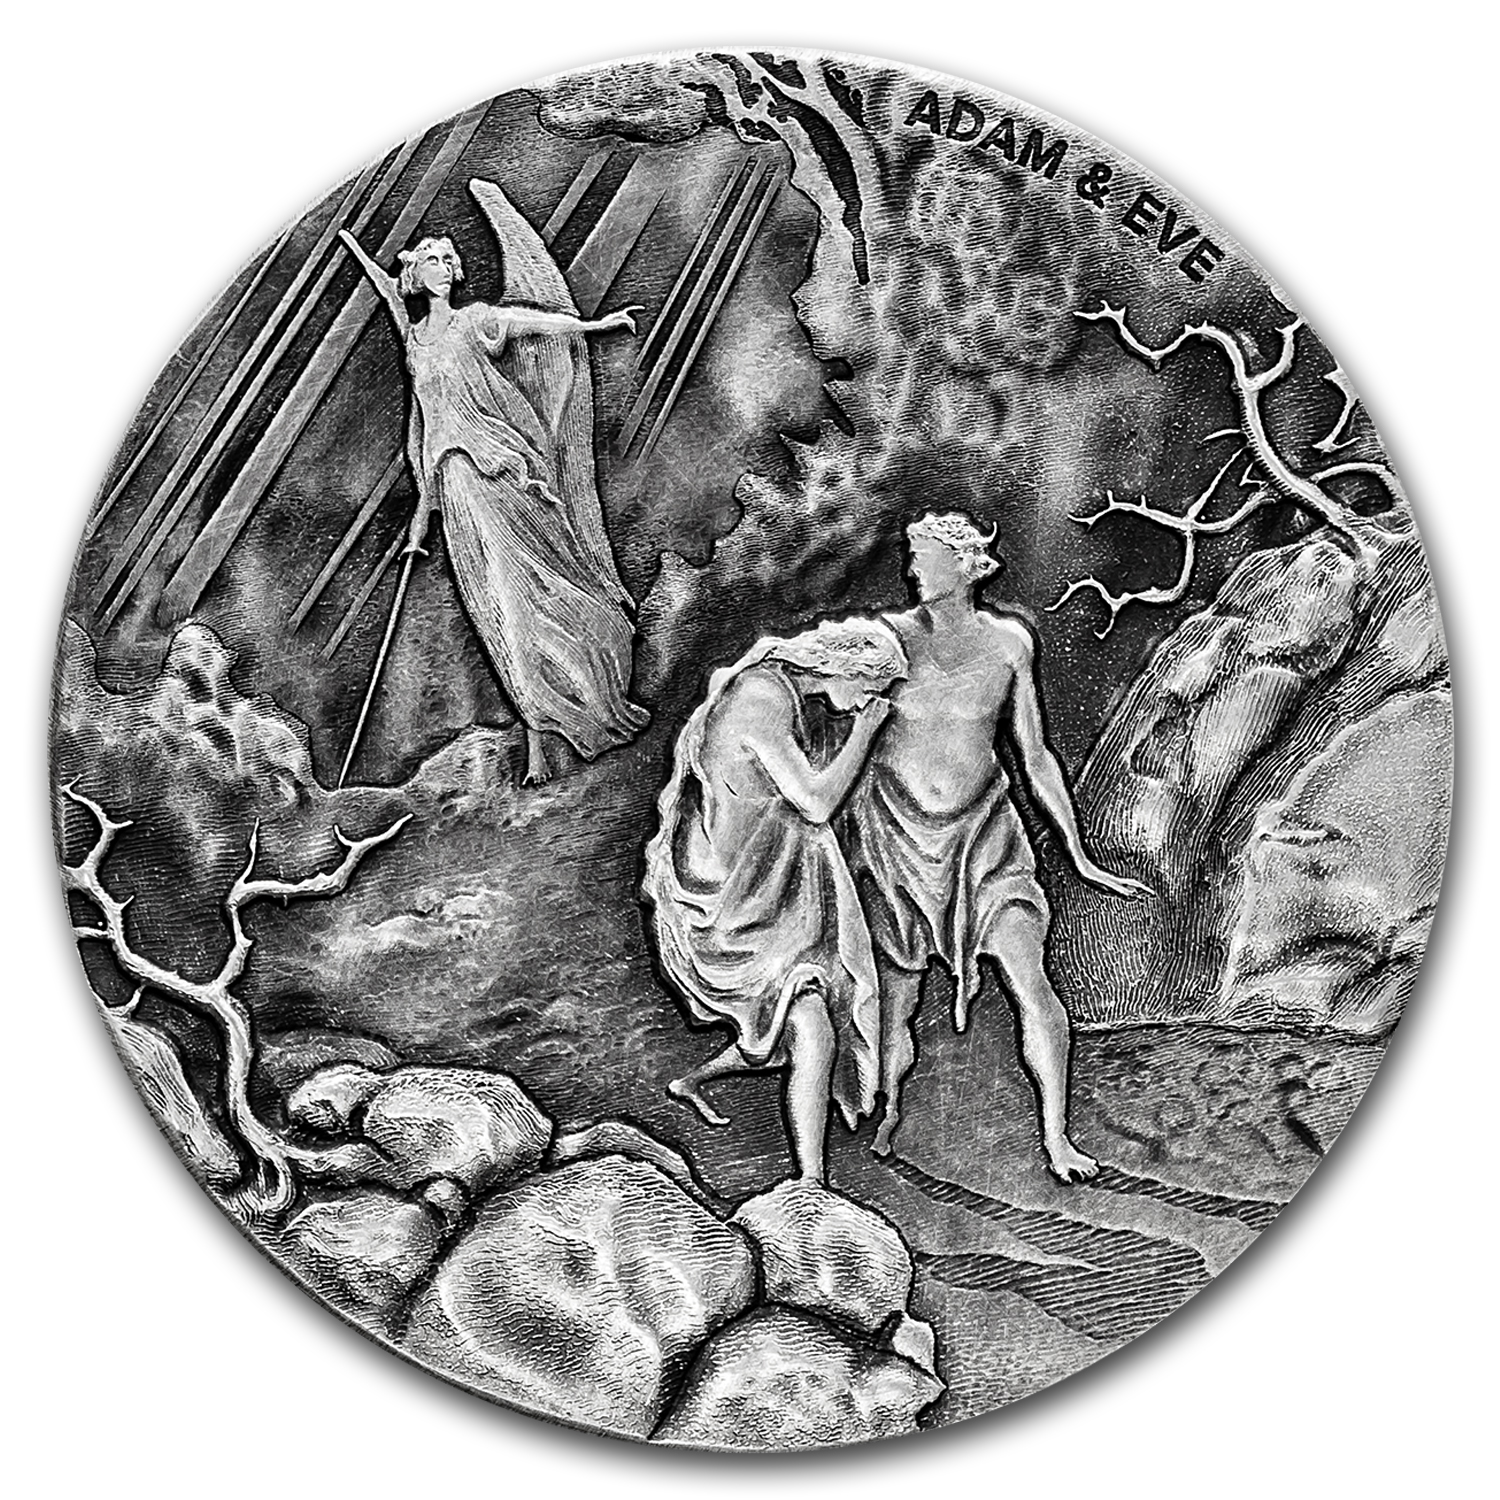 2 oz Silver Coin - Biblical Series (Adam and Eve)